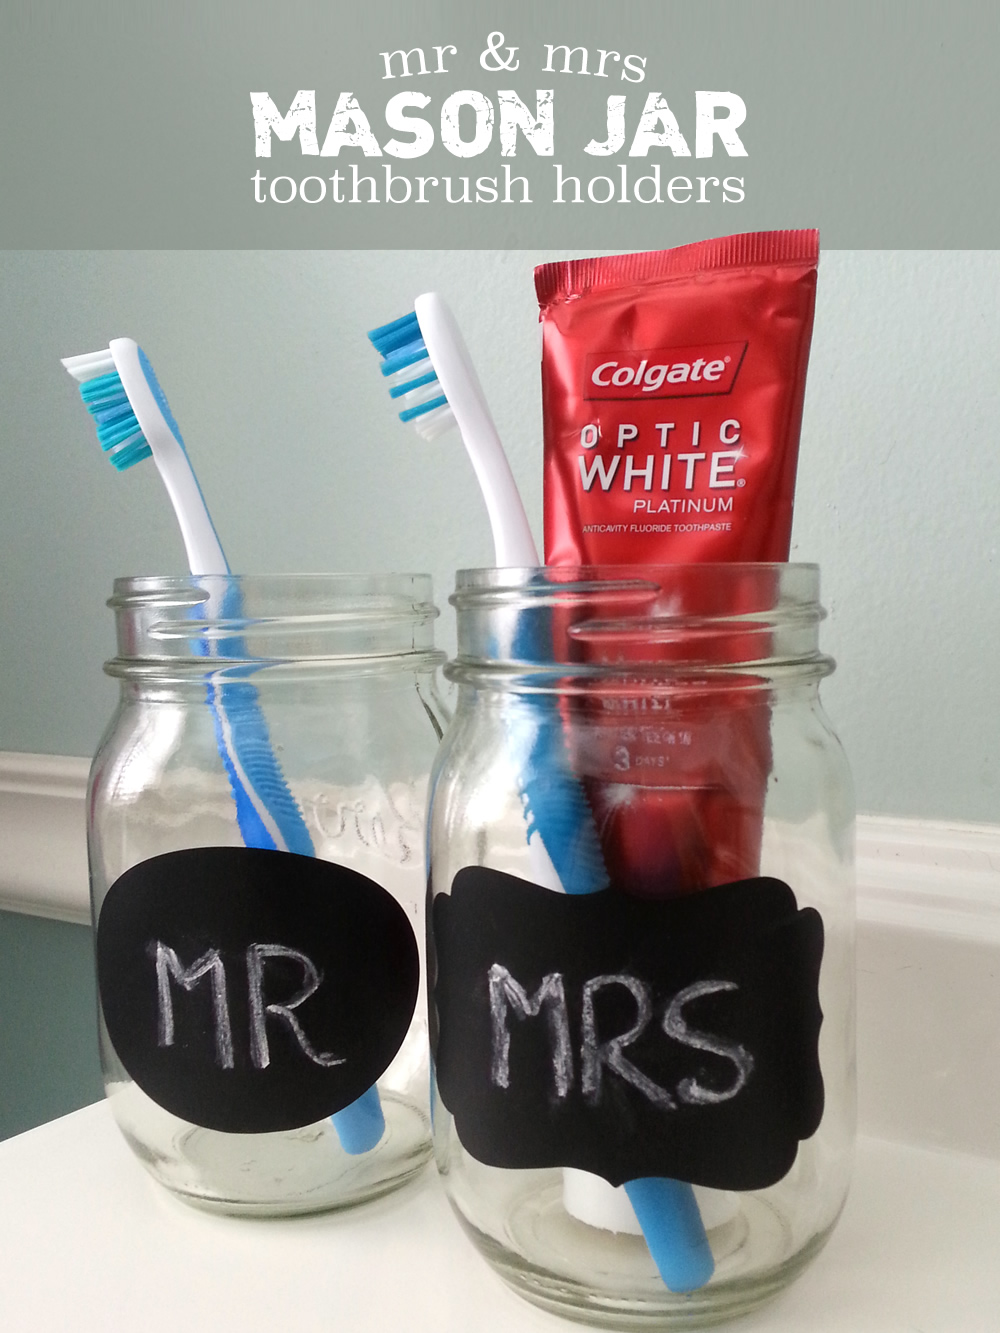 How to make Mr & Mrs mason jar toothbrush holders - Easy DIY project! #OpticSmiles #CollectiveBias #ad